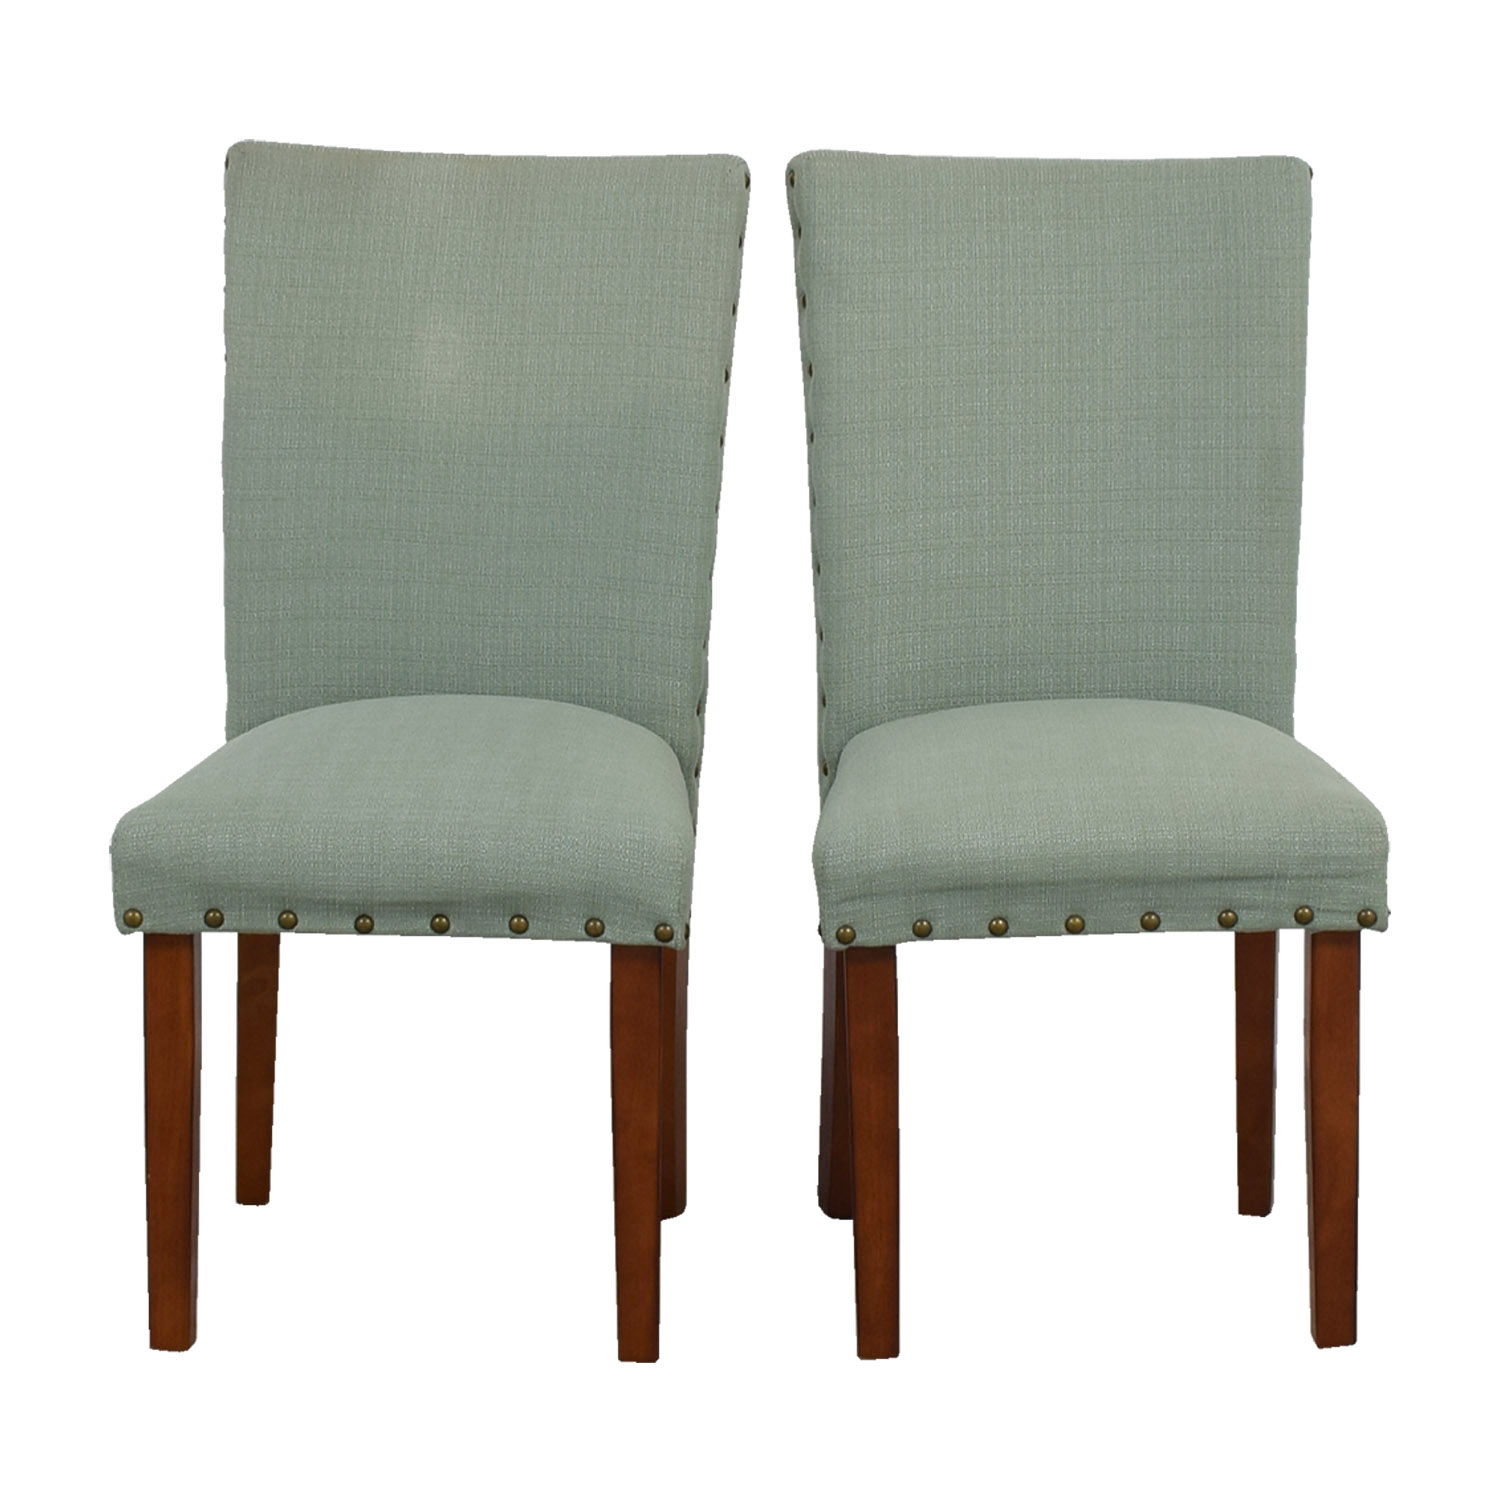 Seafoam Upholstered Nailhead Chairs Accent Chairs